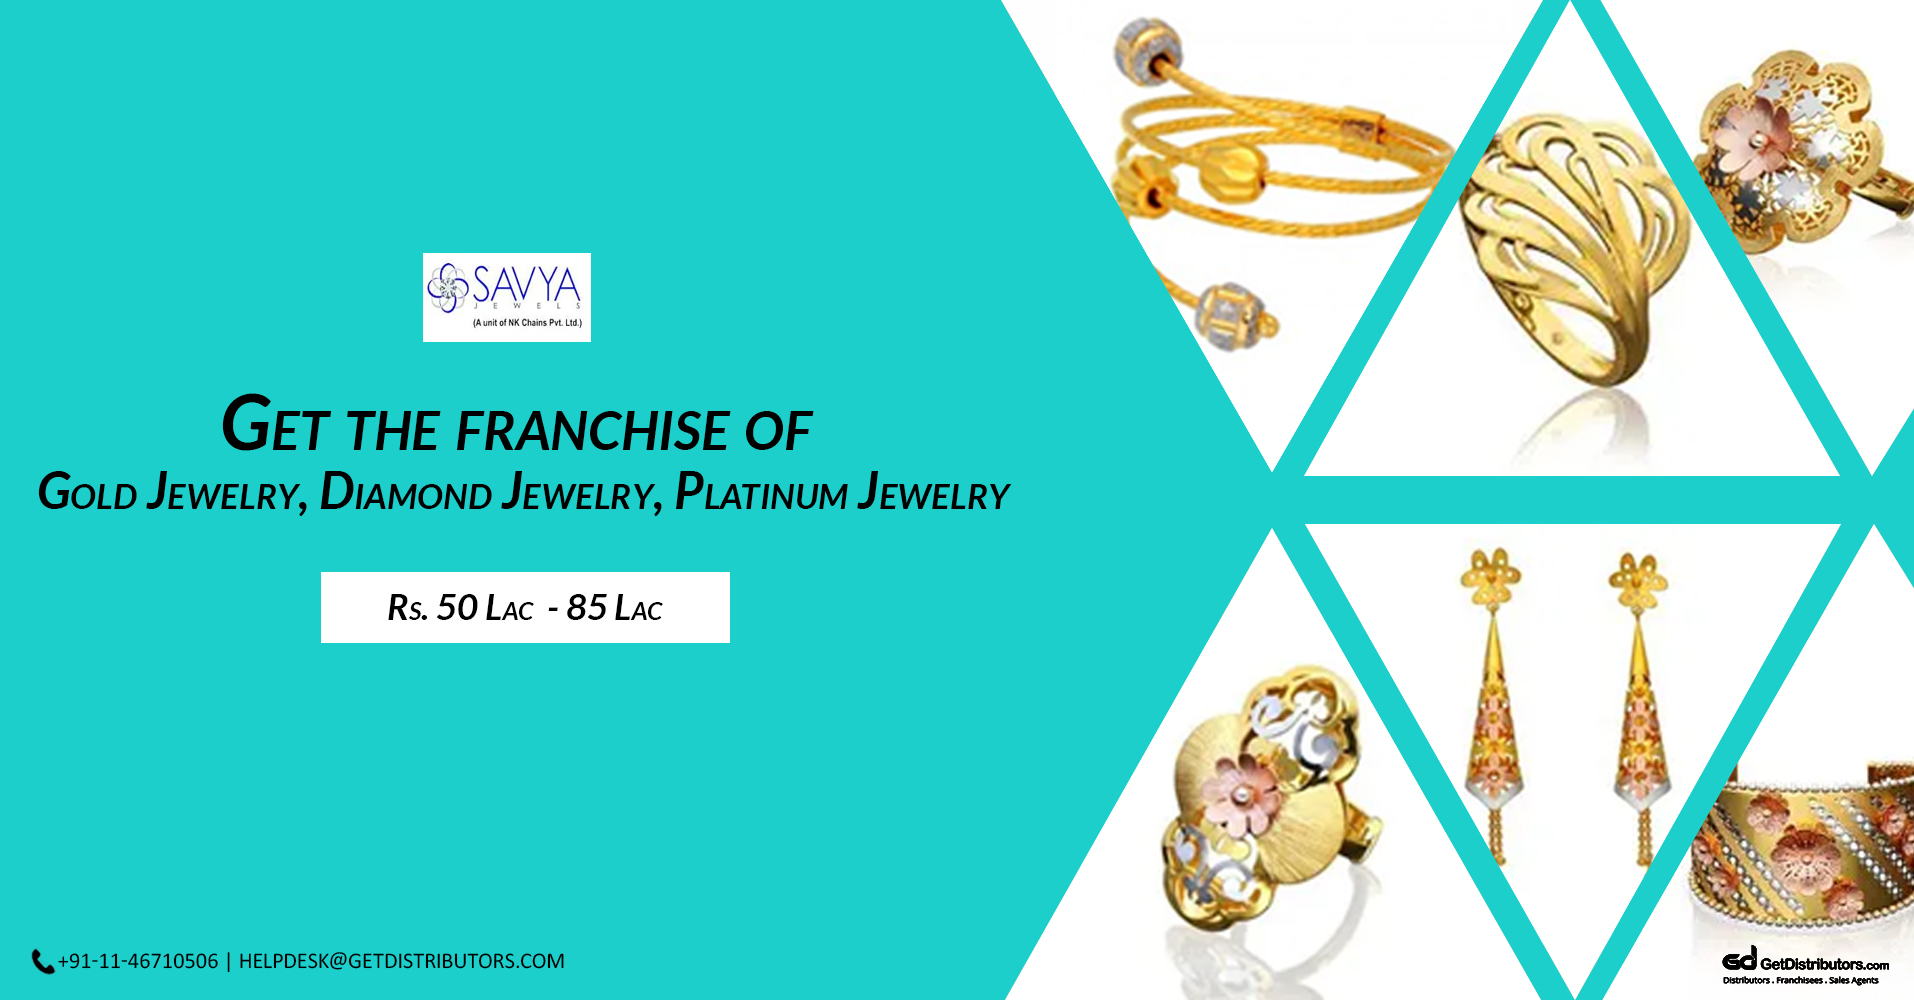 Finely Crafted Jewelry To Complement Your Persona